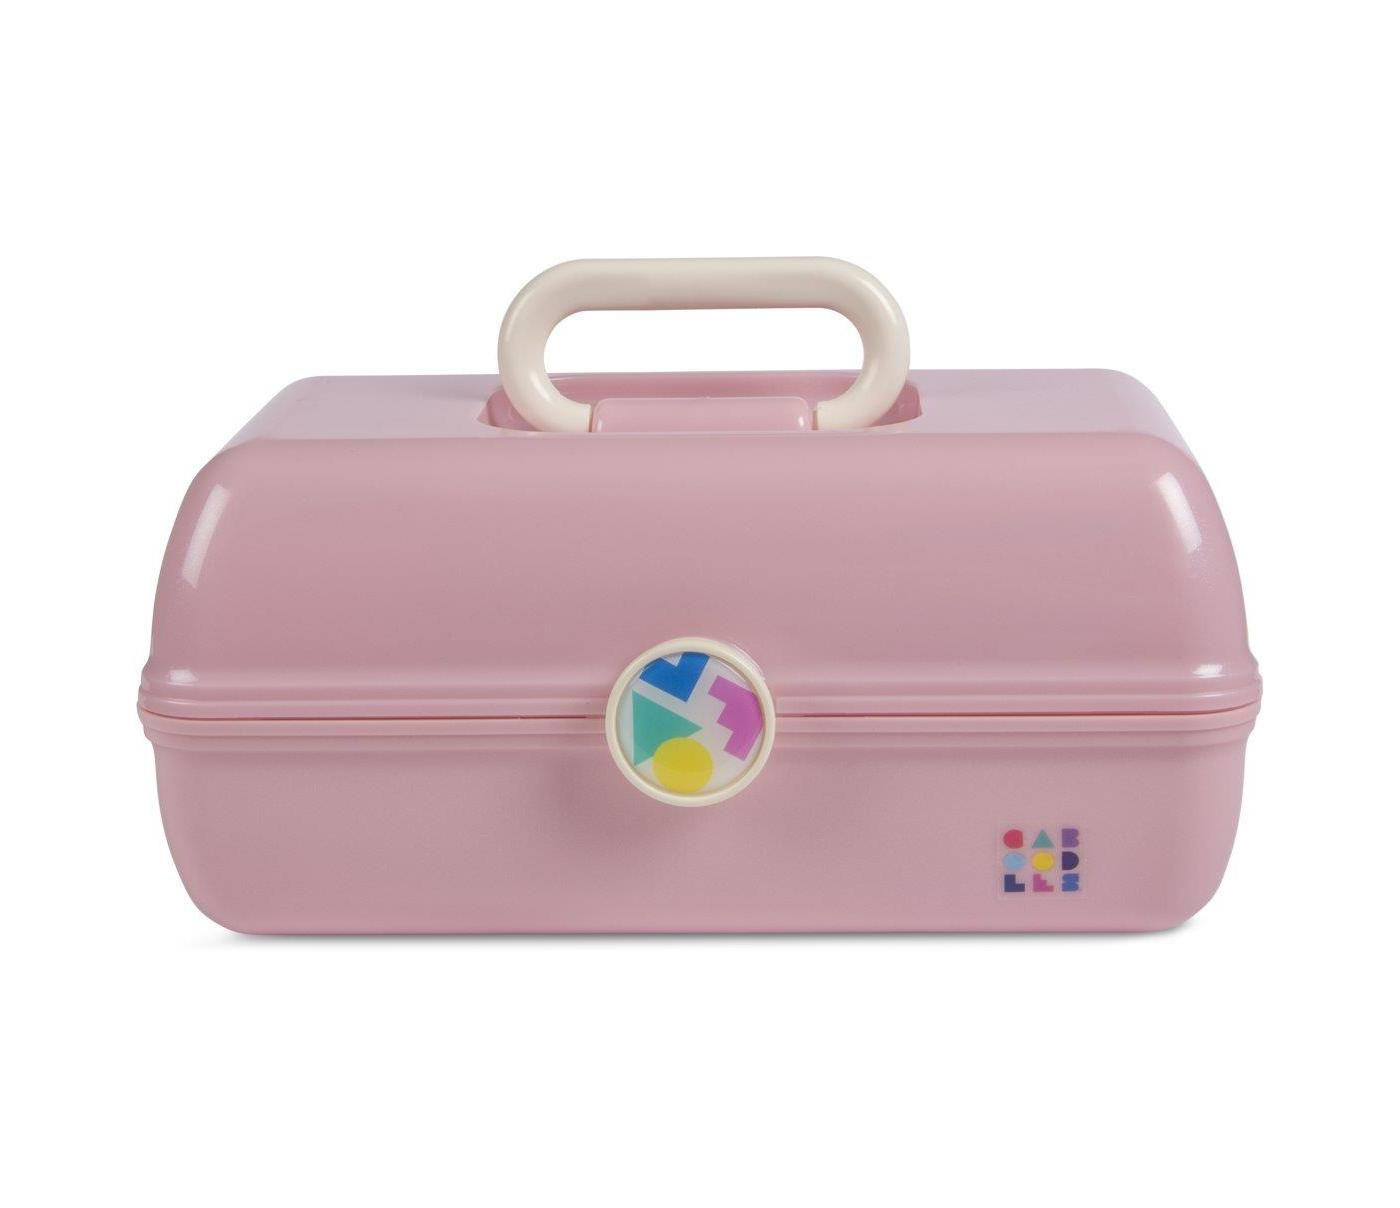 Caboodles Classic Caboodles On the Go Girl Case Millennial Pink - image 2 of 3